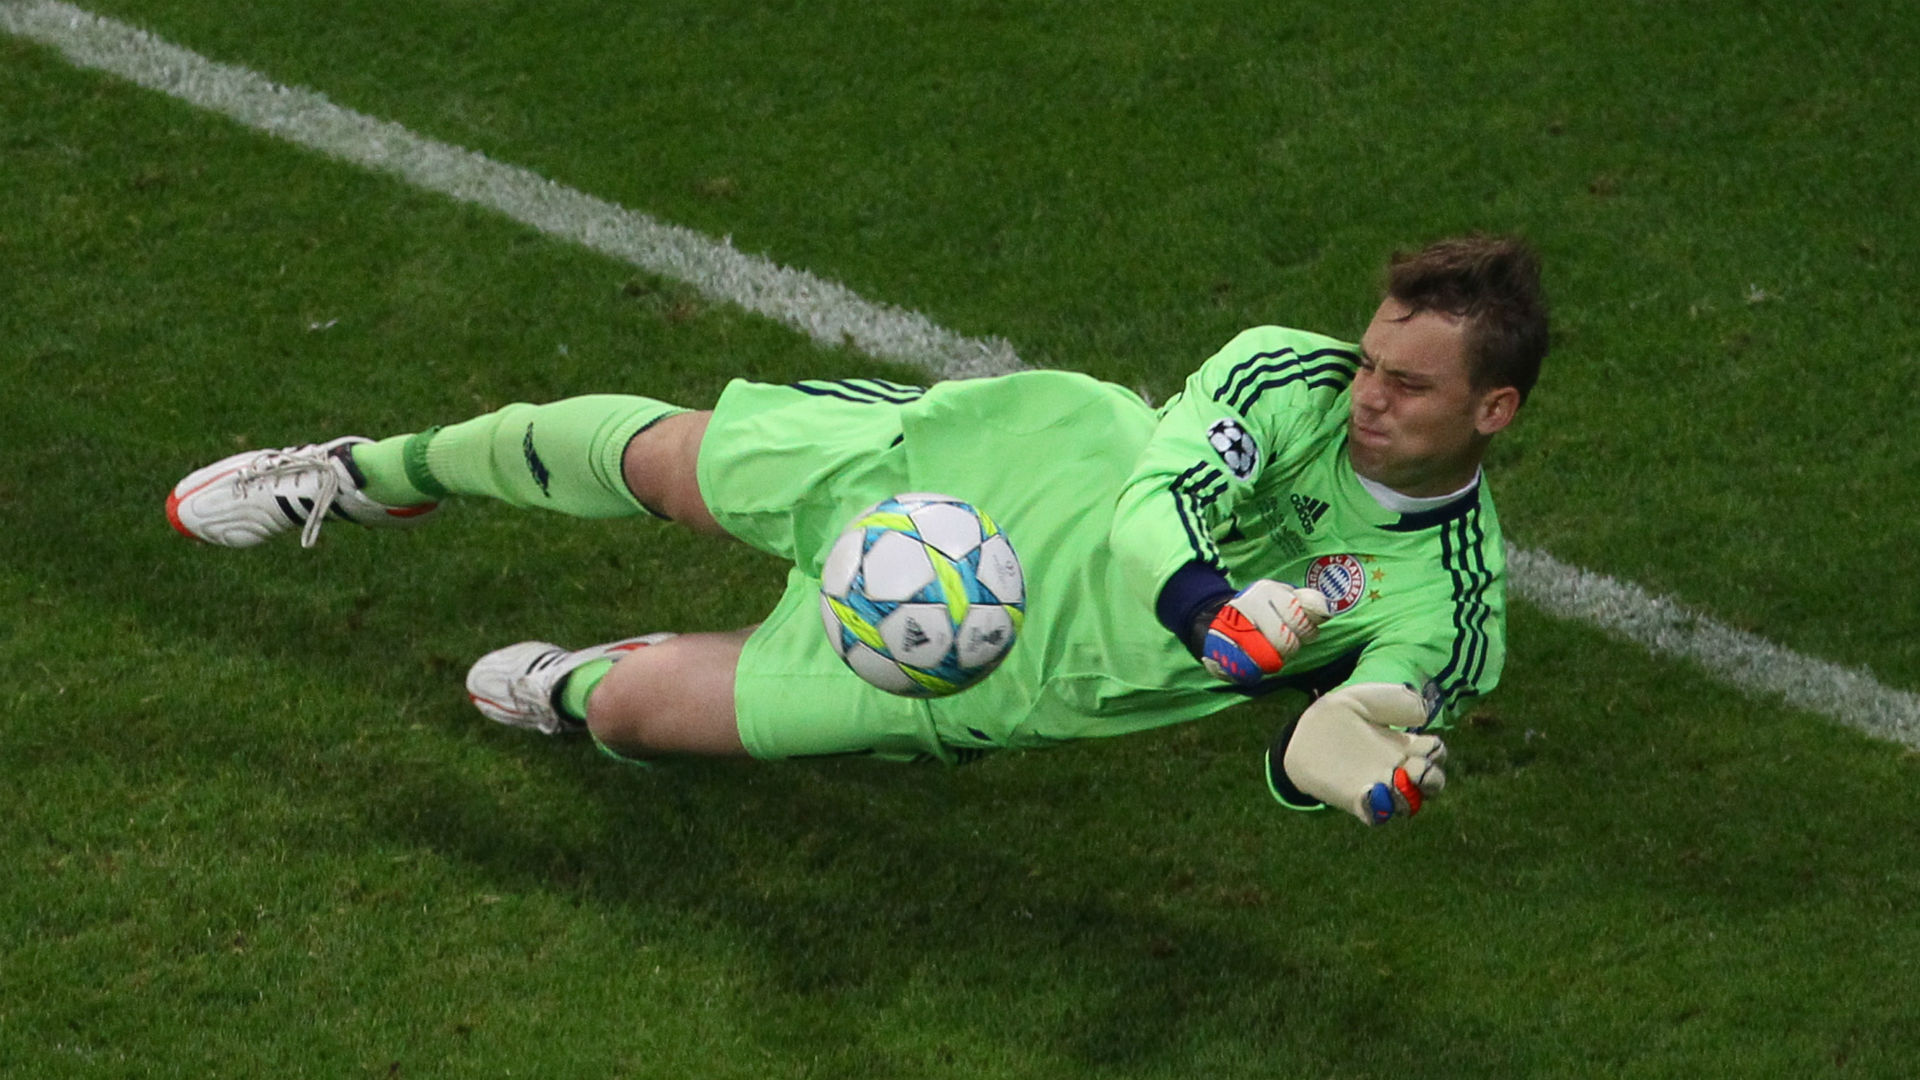 Neuer dreaming of captaining Bayern Munich in another home Champions League final after signing new contract